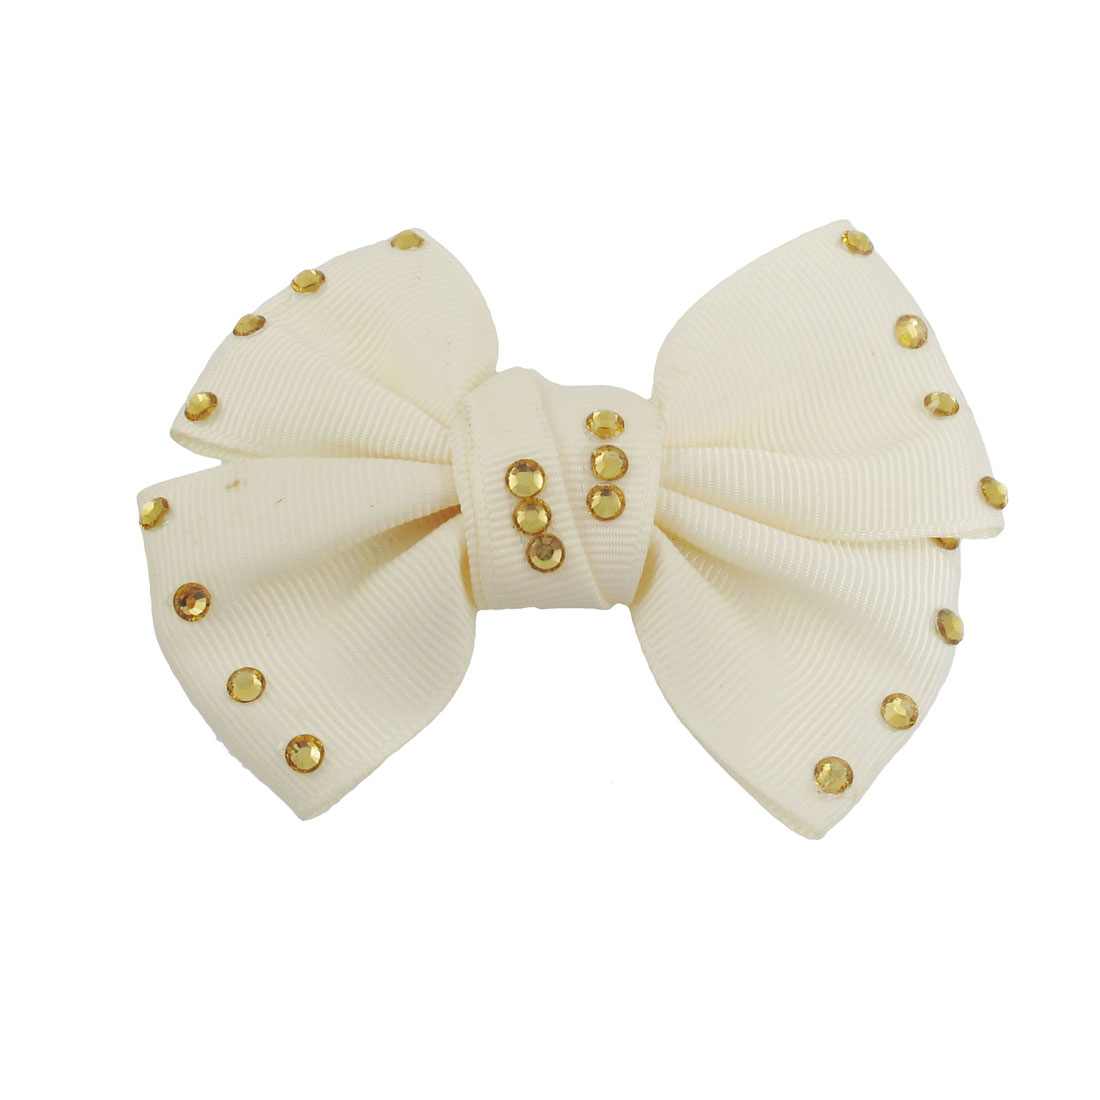 Beige Nylon Bowtie Shape Golden Tone Rhinestone Decor Barrette Hairclip